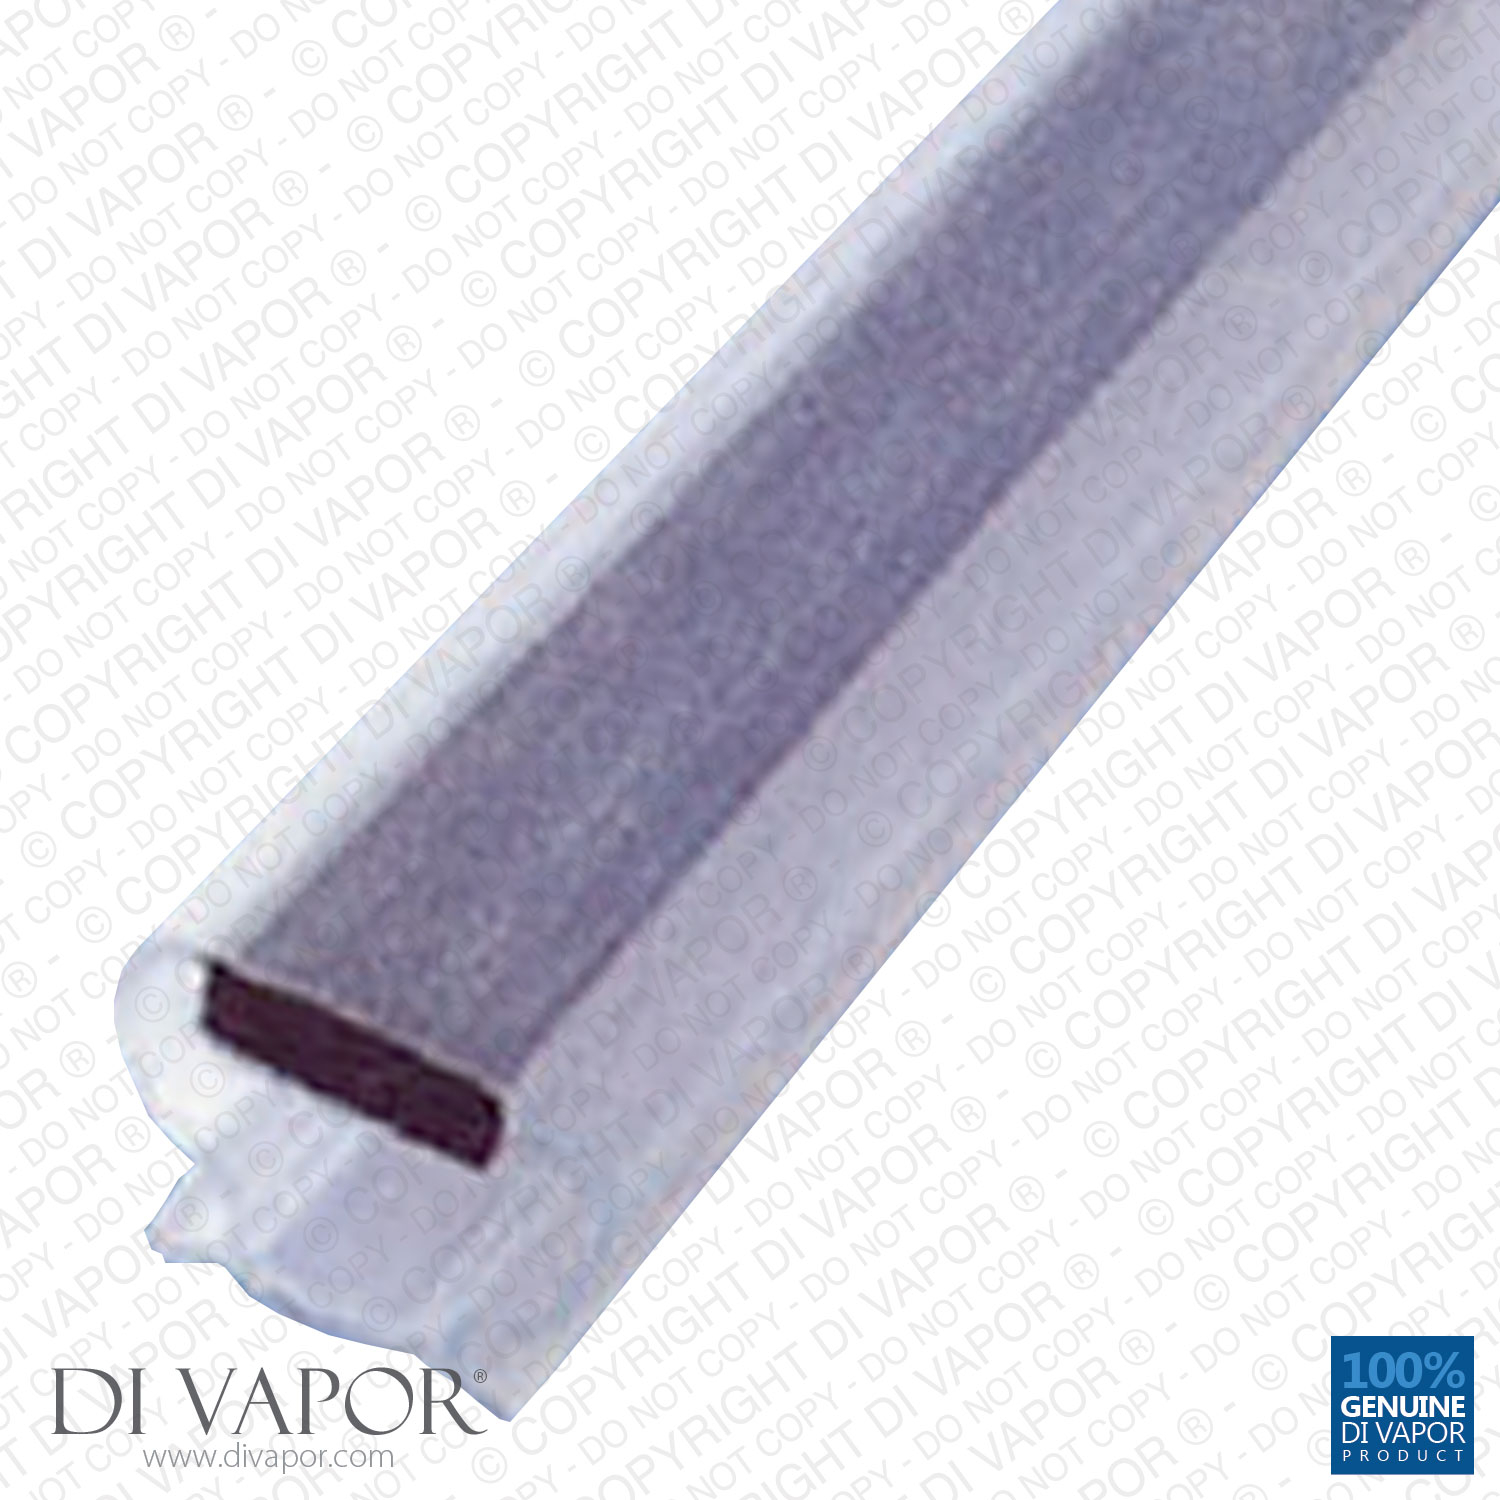 Replacement Magnetic Channel Seal For Shower Door 10mm Channel with sizing 1500 X 1500